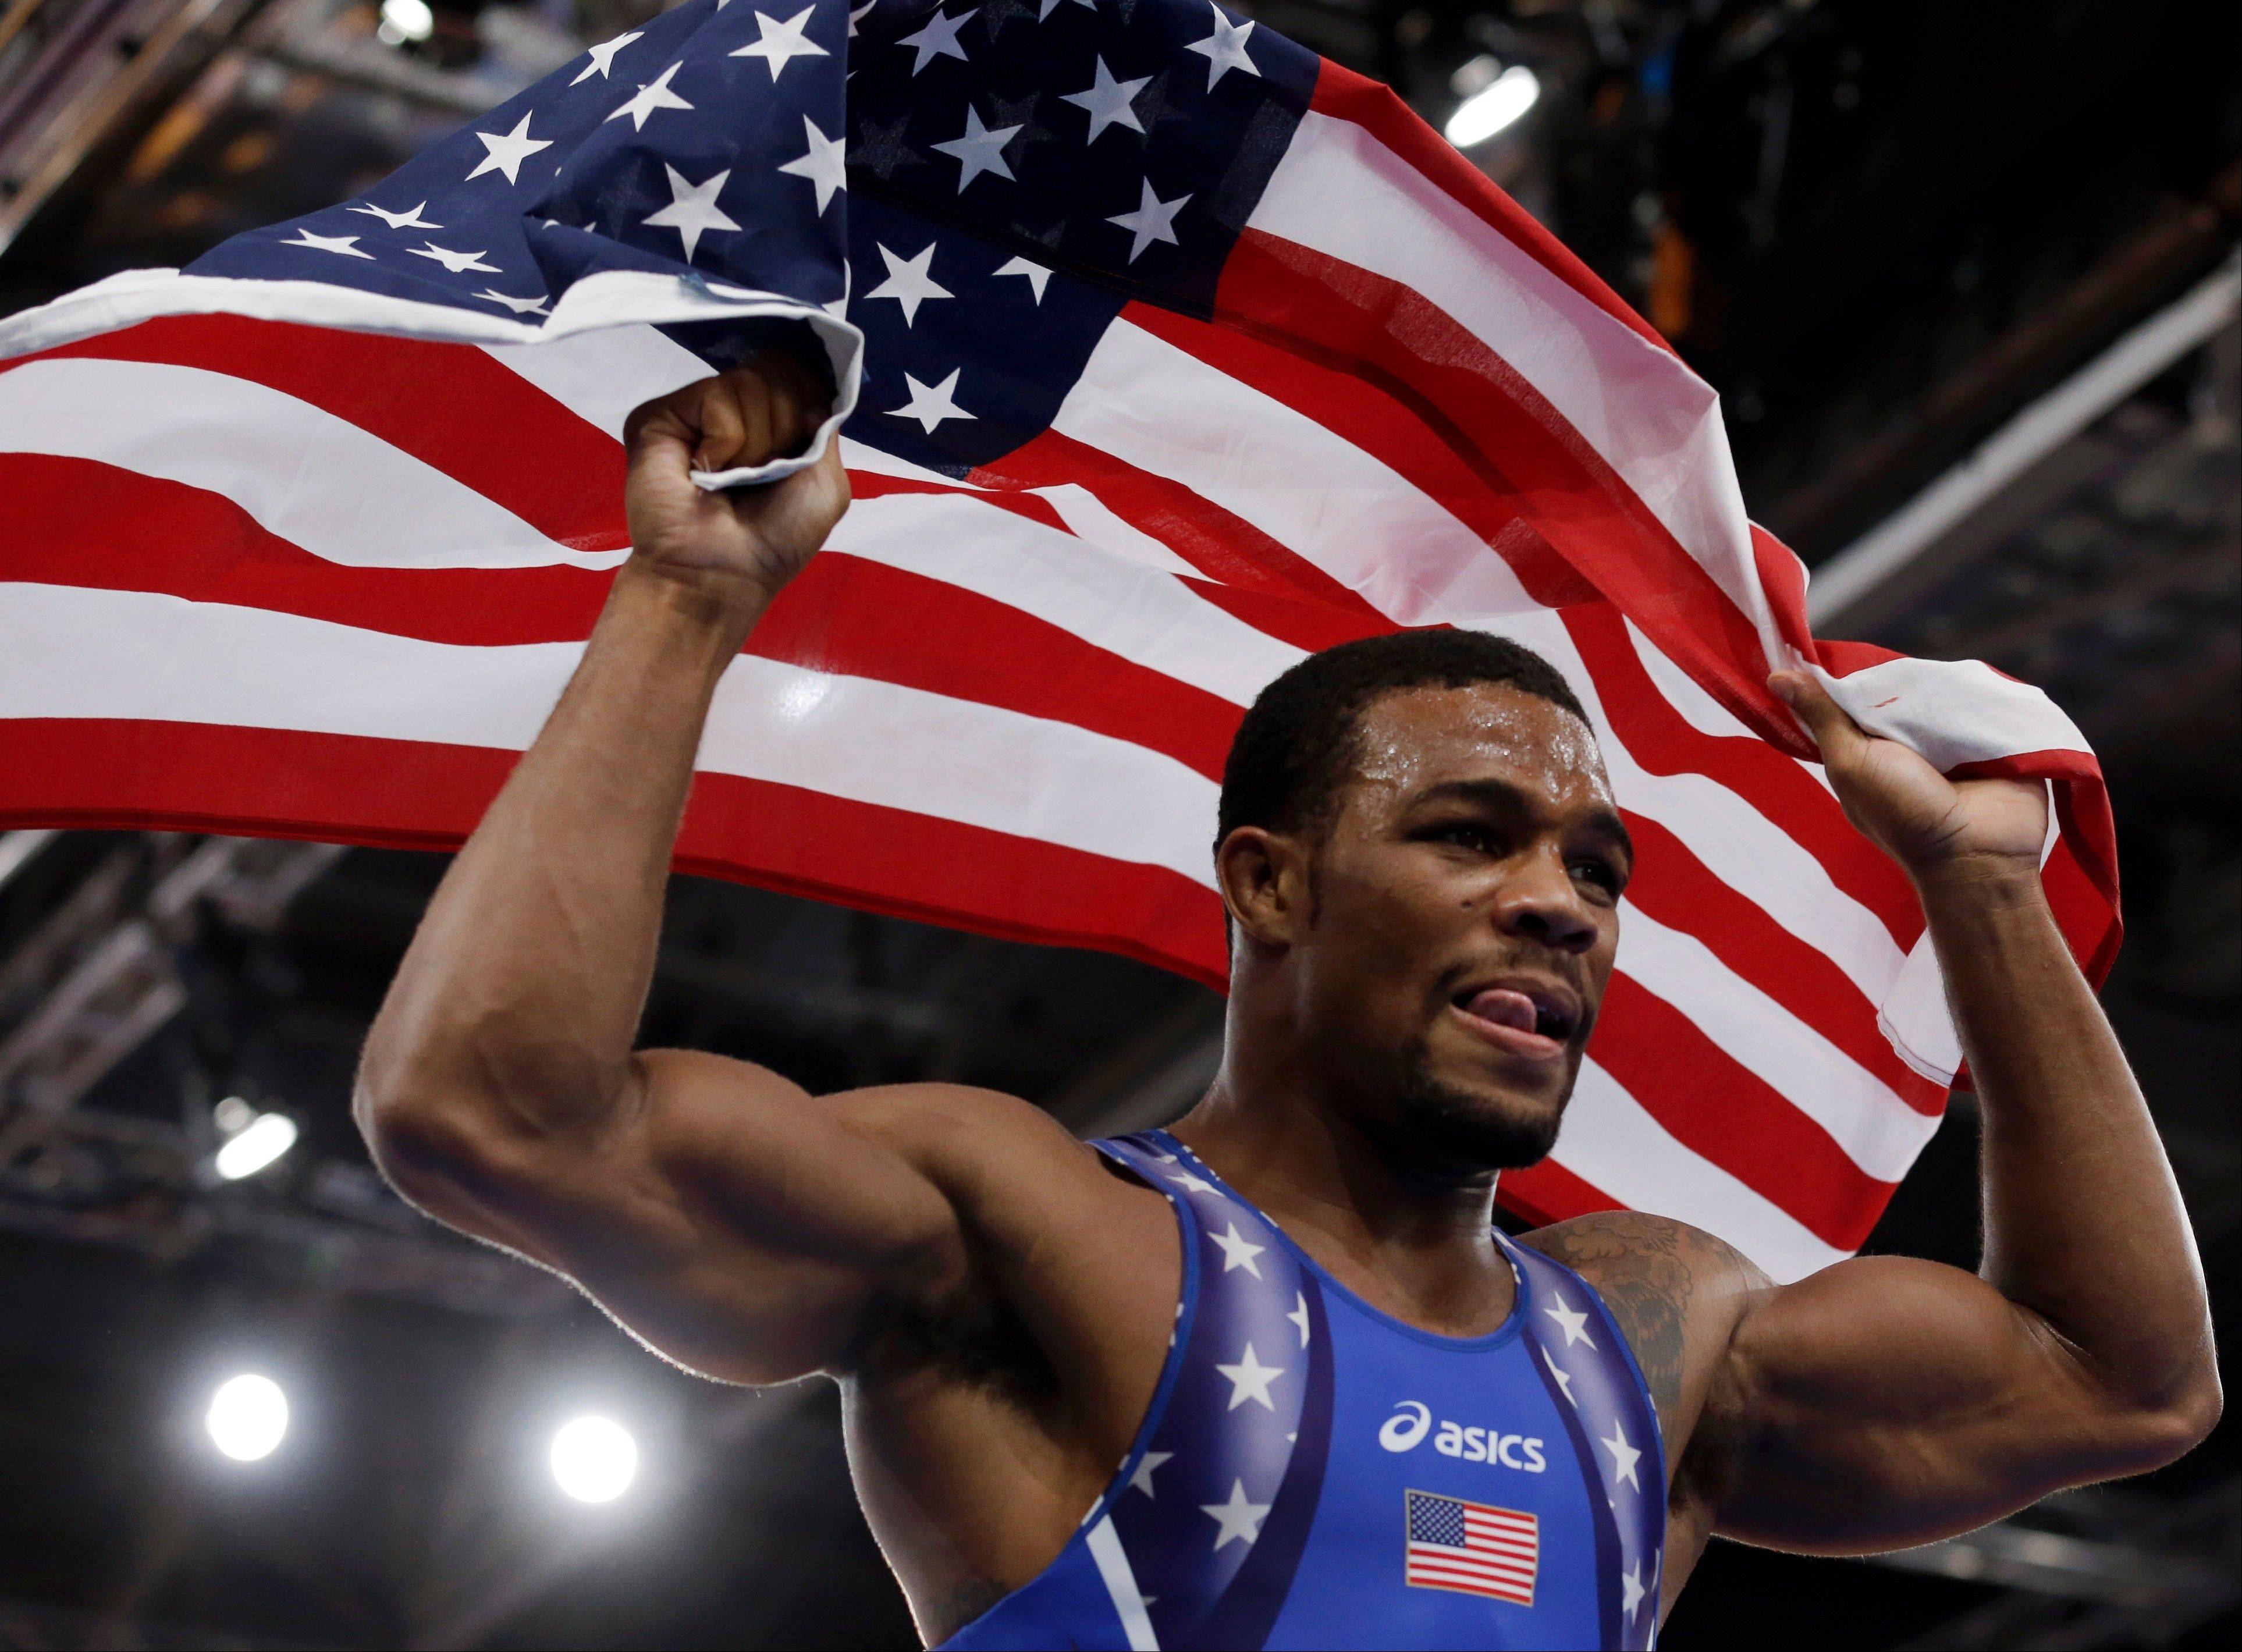 United States wrestler Jordan Burroughs celebrates Friday after beating Iran�s Sadegh Saeed Goudarzi in the freestyle gold medal match at 74-kg.